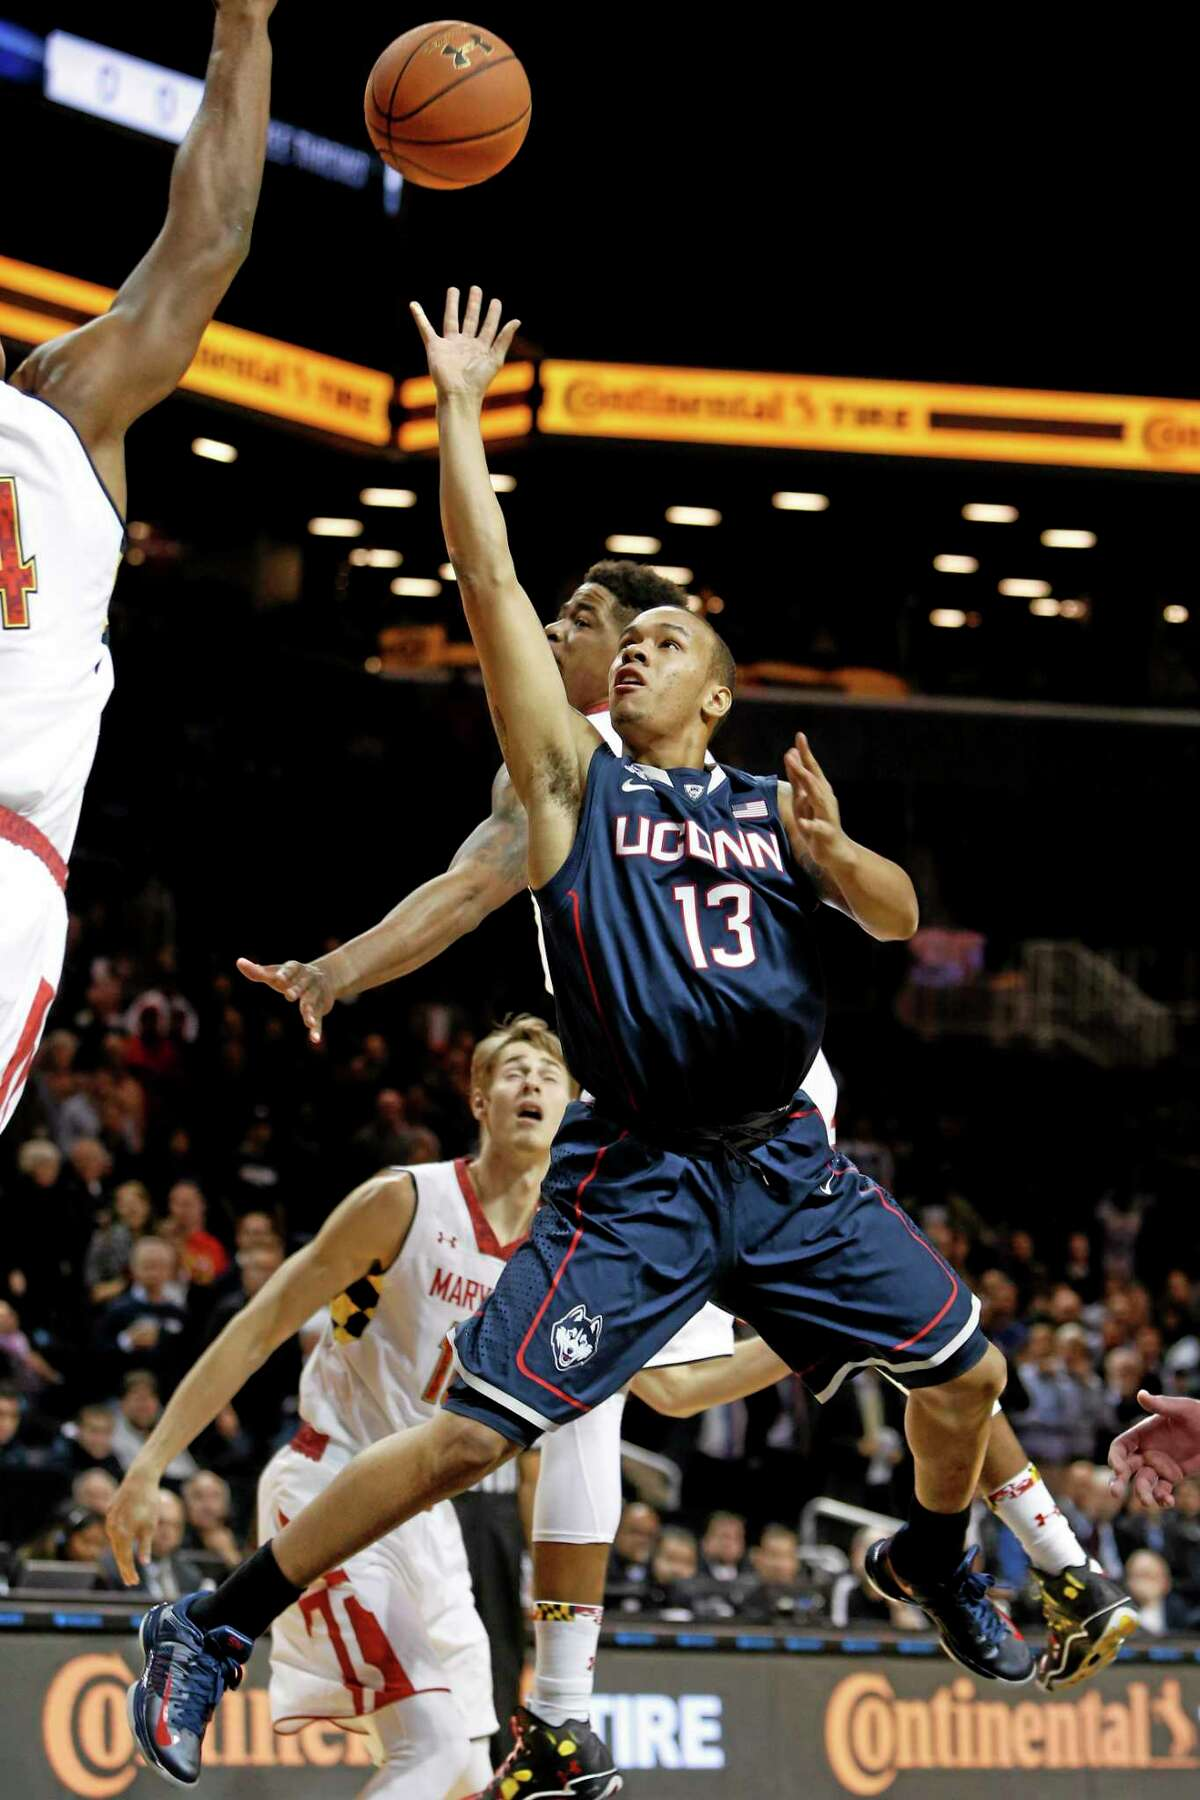 Connecticut's Shabazz Napier (13) shoots against Maryland's Shaquille Cleare, left, during the first half of an NCAA college basketball game Friday, Nov. 8, 2013, in New York. (AP Photo/Jason DeCrow)